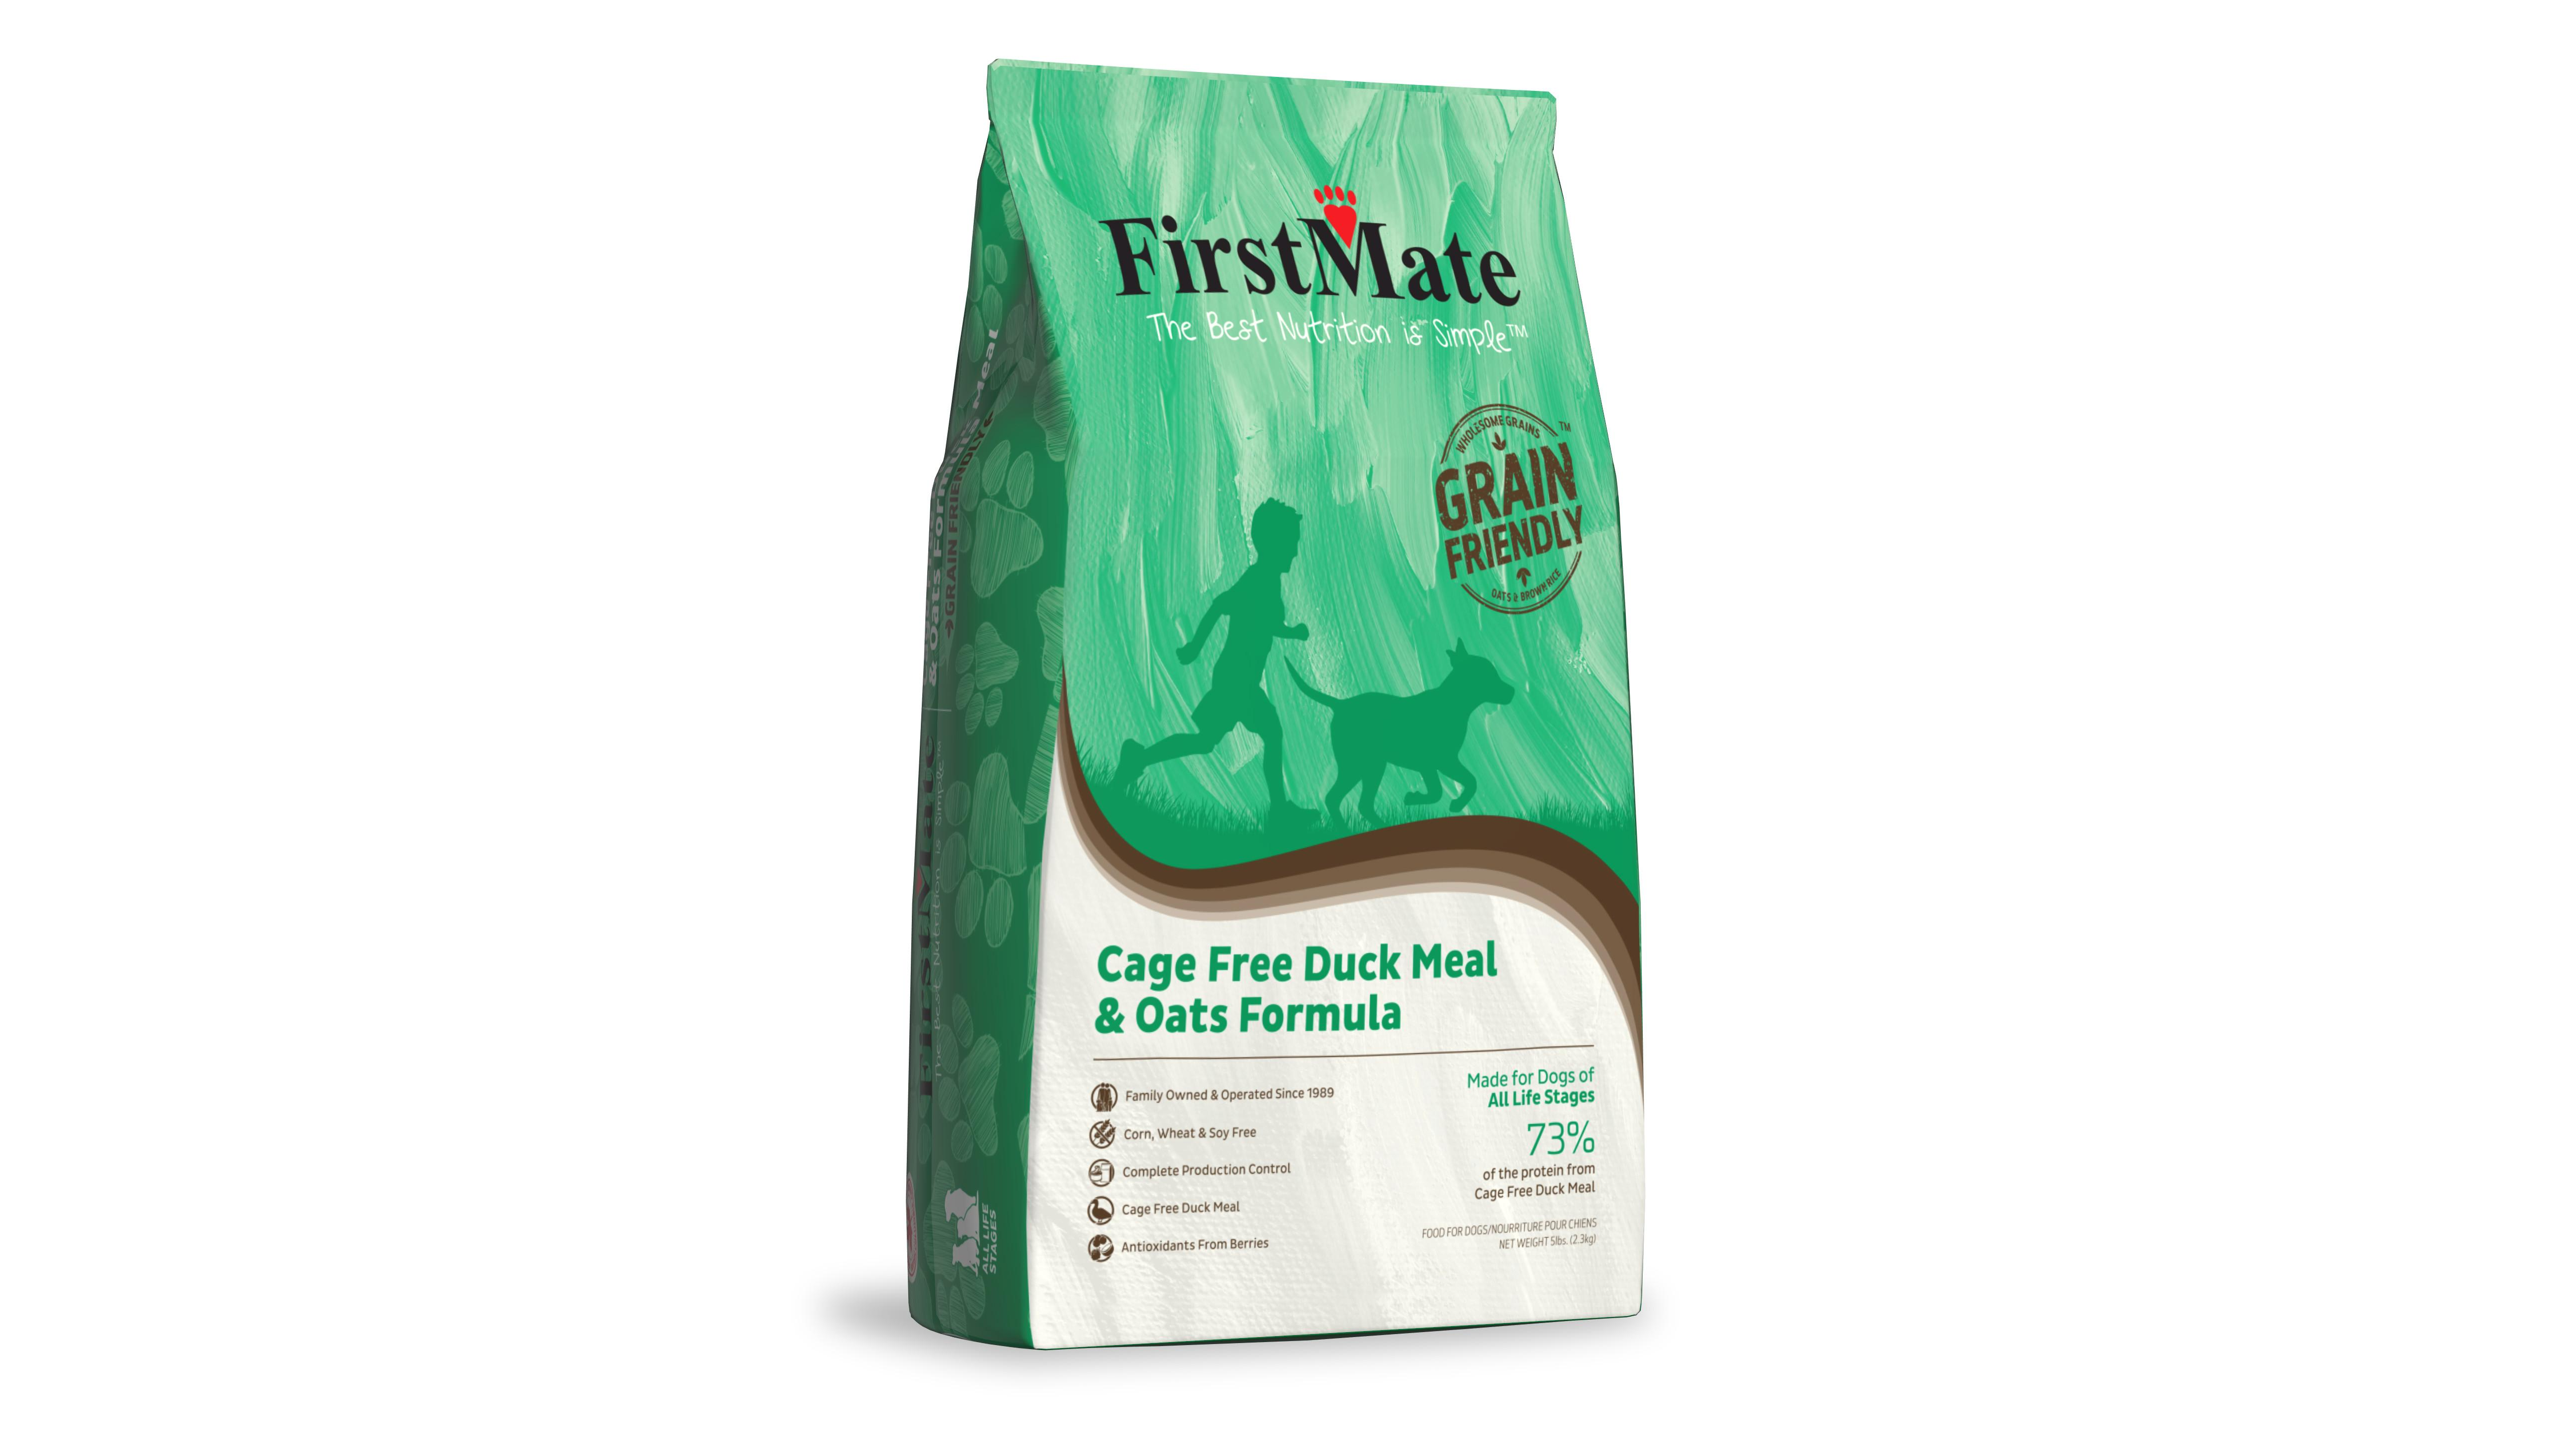 FirstMate Cage-Free Duck Meal & Oats Grain Friendly Dry Dog Food Image